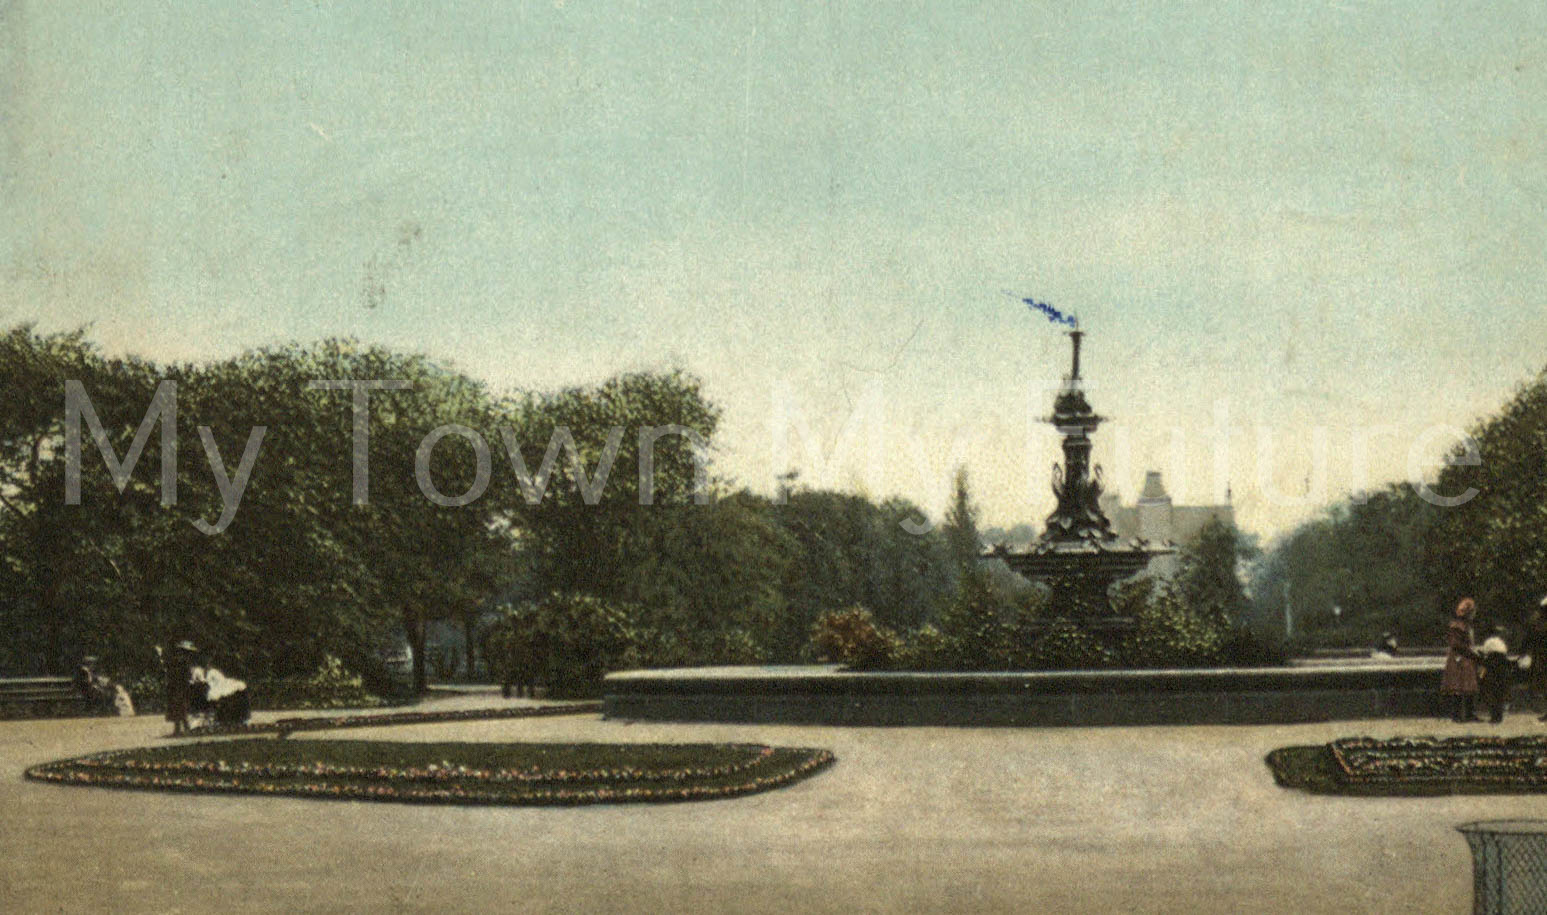 Albert Park - Fountain which was presented by Joseph Pease Esq. Postmarked 20th August 1907, Wrench - Series